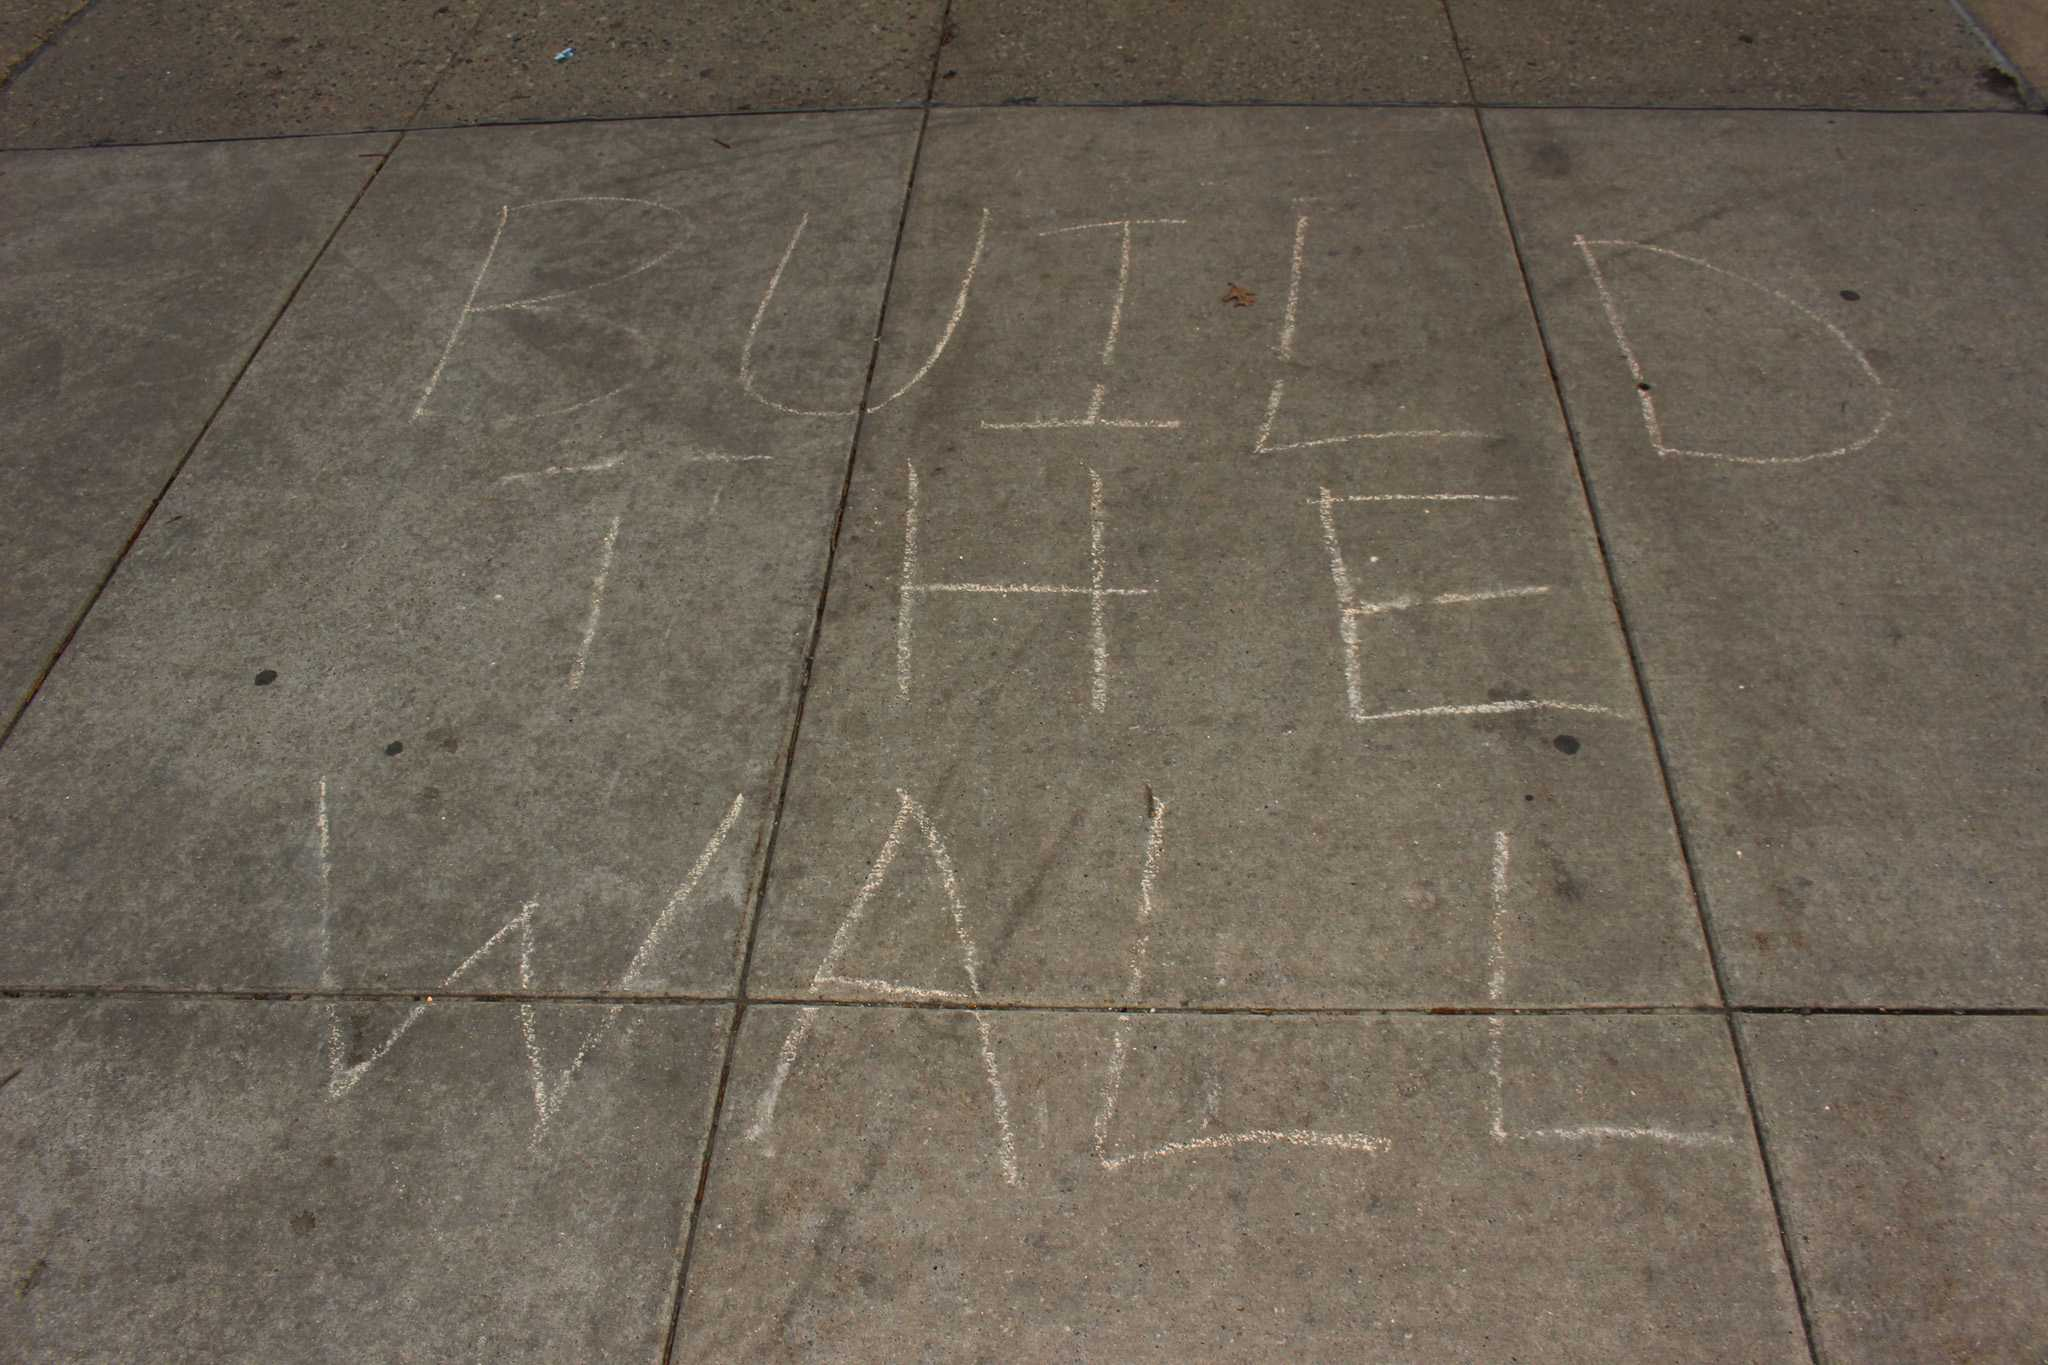 The Trump slogan chalked on the sidewalk on the Quad at the University of Illinois Urbana-Champaign on Tuesday, April 5, 2016.